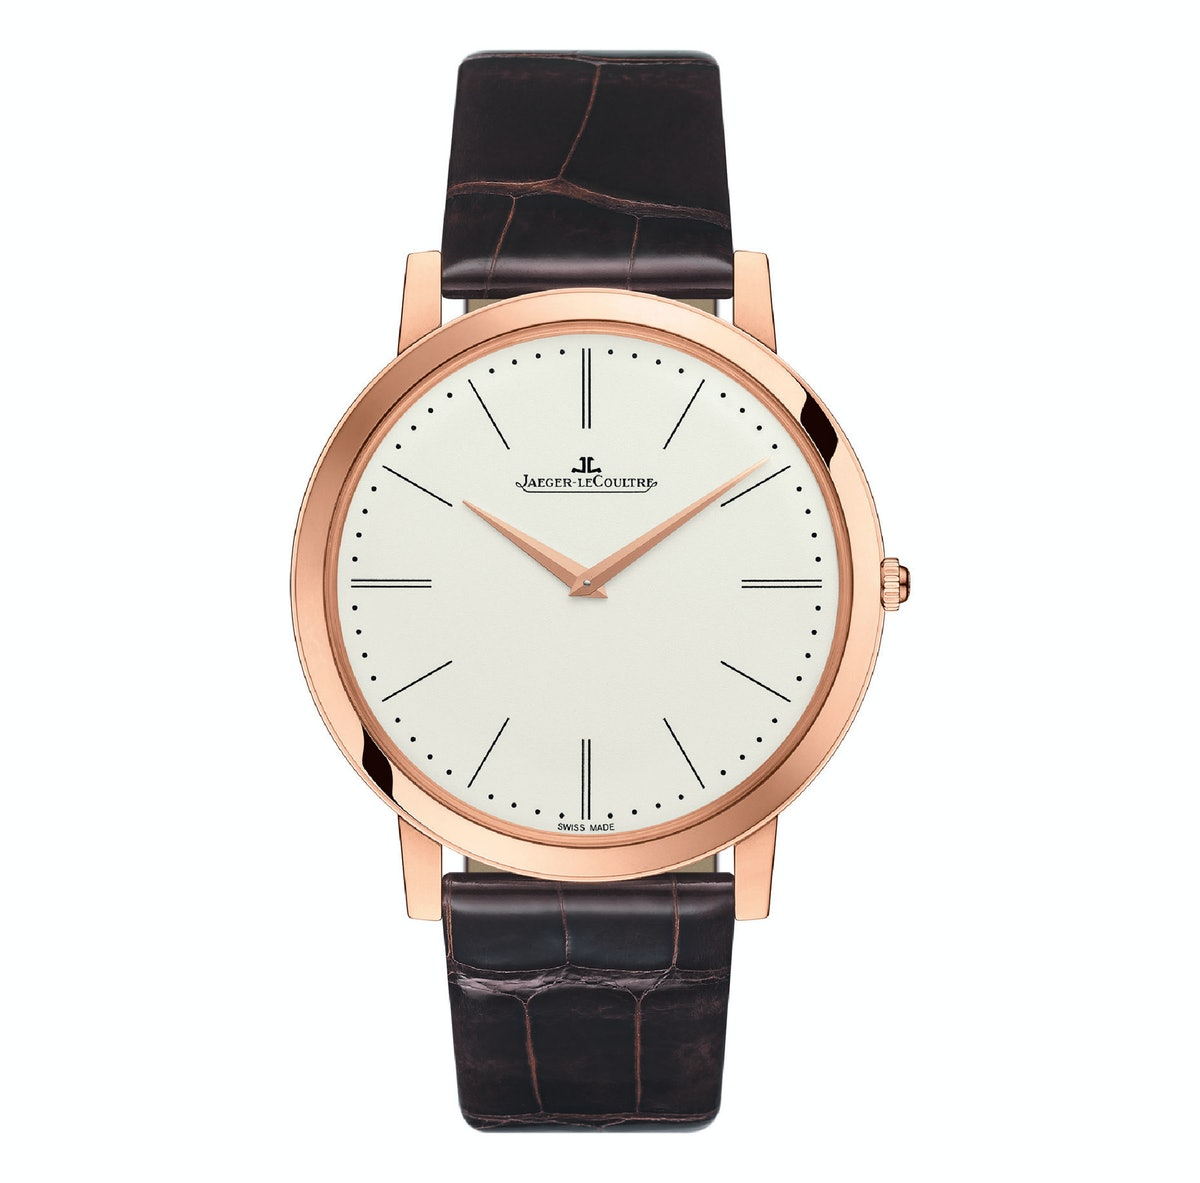 Jaeger-LeCoultre pink-gold watch